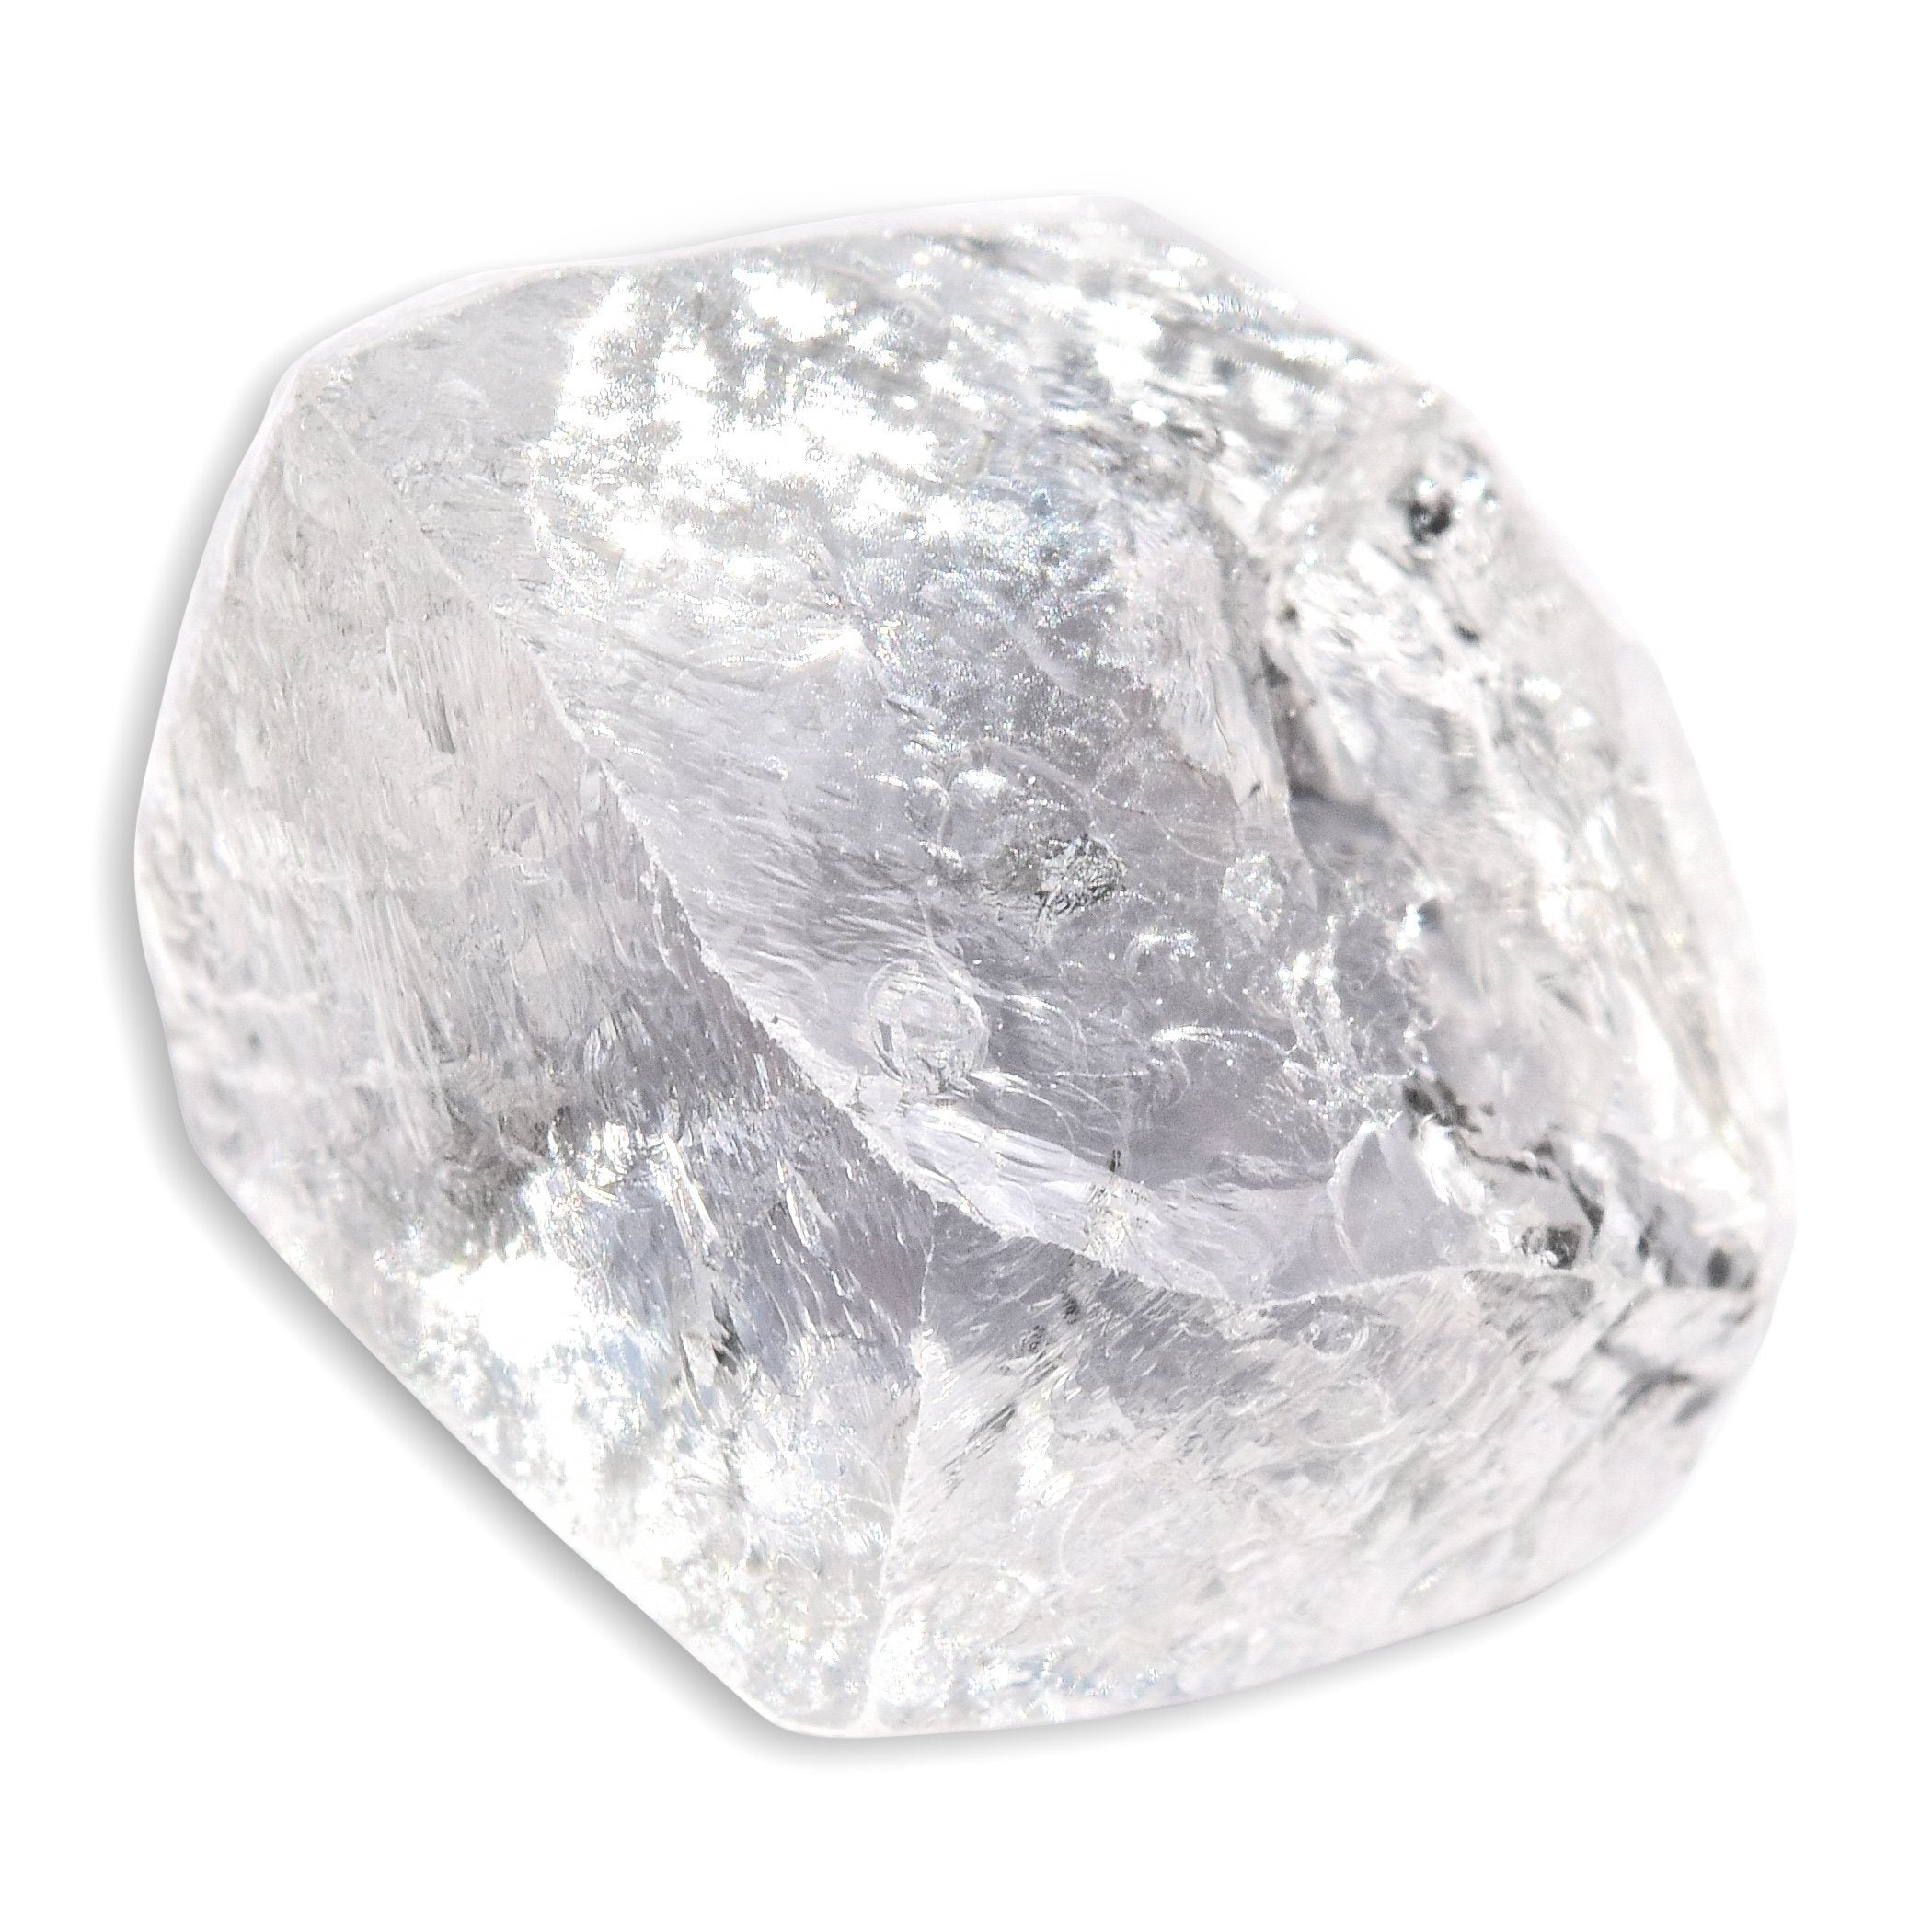 2.47 carat flat and smooth rough diamond freeform stone Raw Diamond South Africa